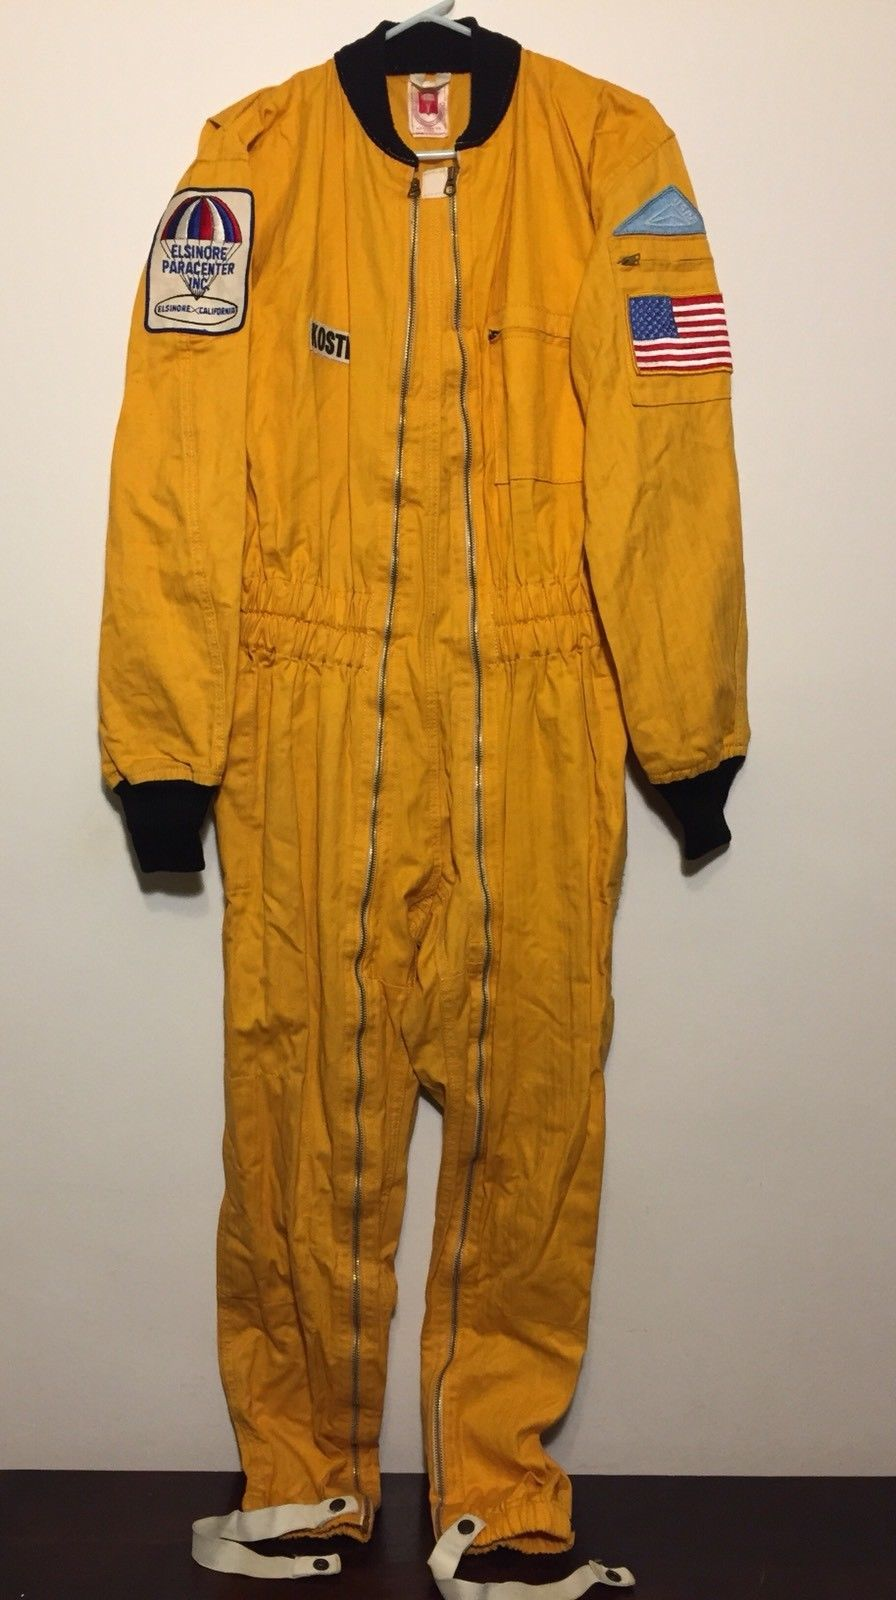 Vintage 1960s Skydiving Parachute Jumpsuit M Yellow Skydive Pioneer Flight Suit 161 99 For Your Consideration A P Flight Suit Jumpsuit Skydiving Parachute